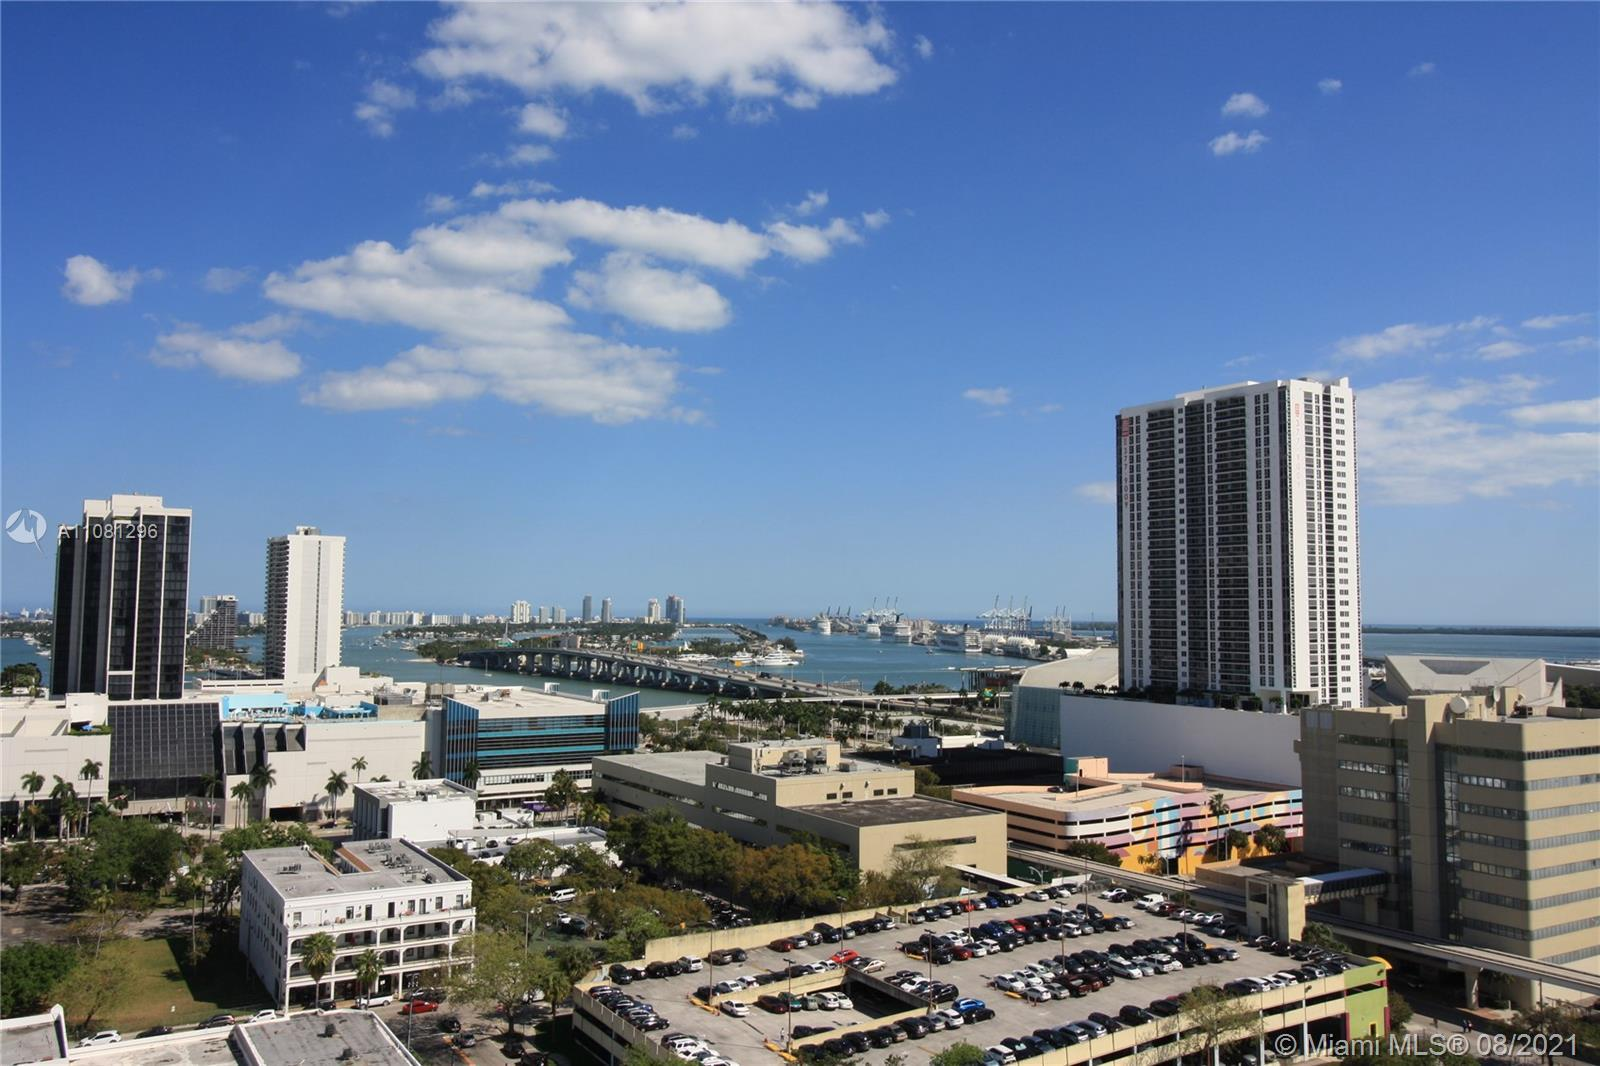 Great opportunity for investors! Just rented for $ 2500/month. Beautiful east views. Best line in th